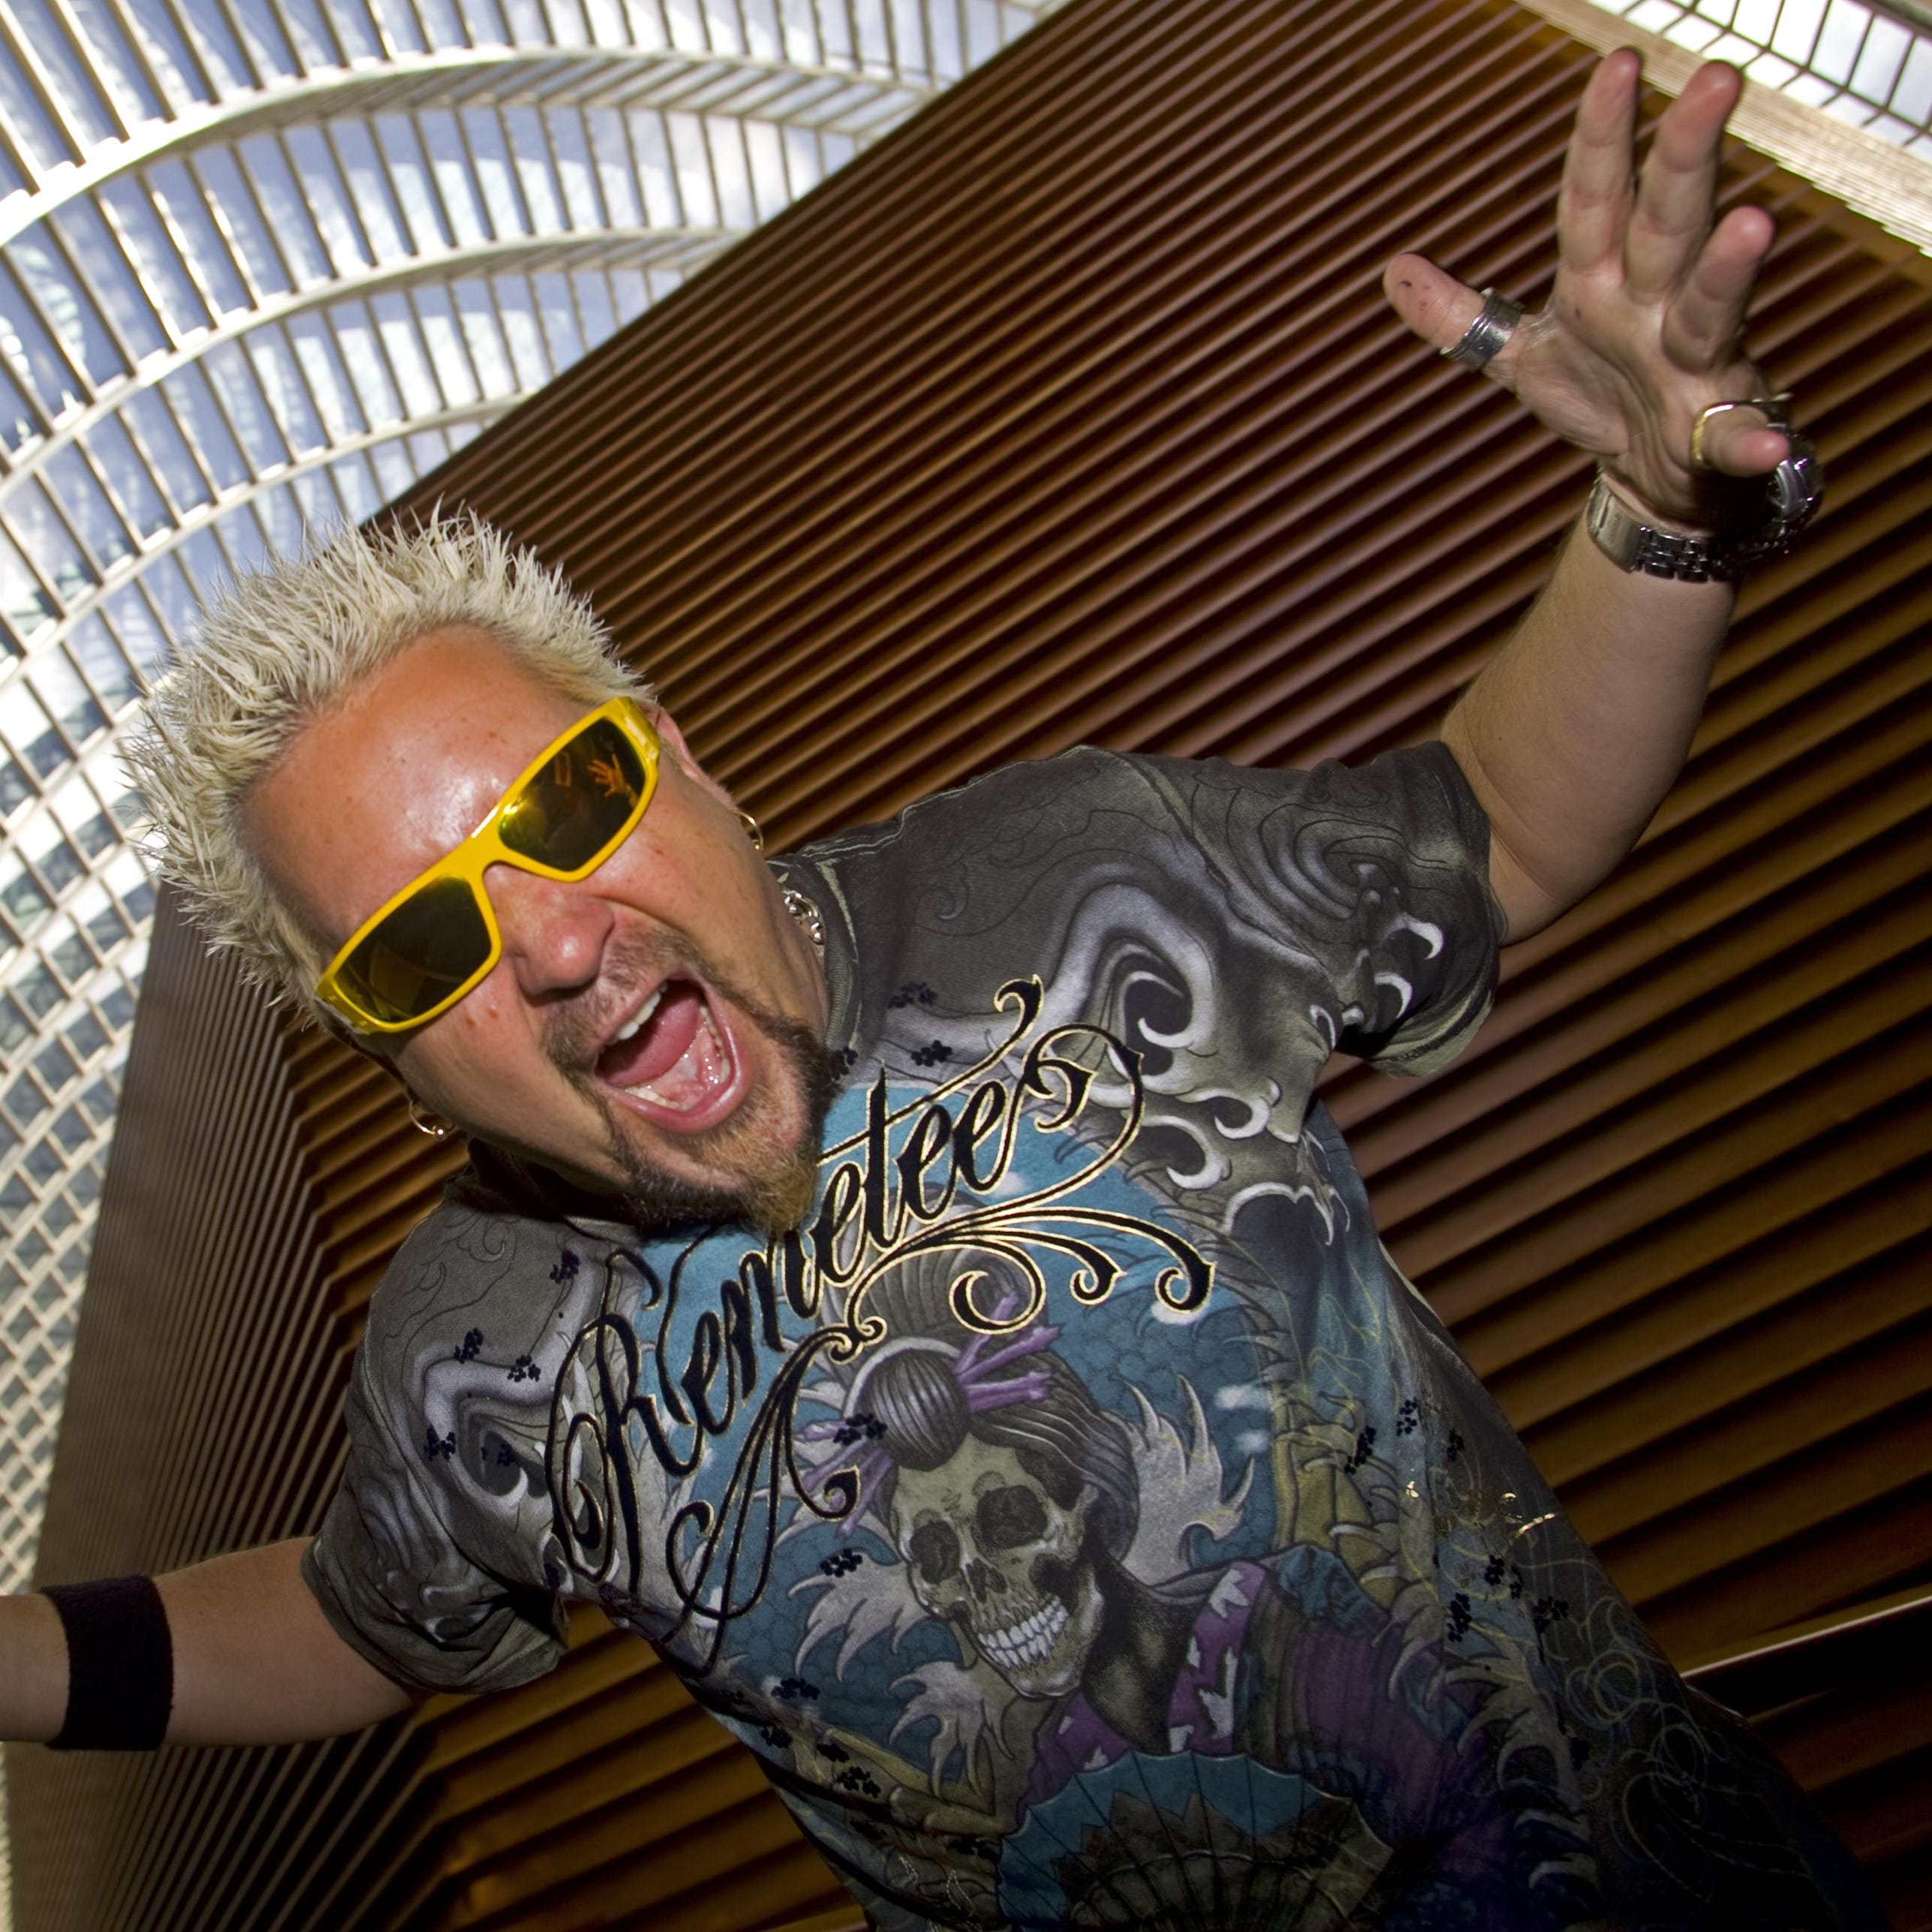 Food Network star Guy Fieri's visits to Delaware restaurants begin airing May 24